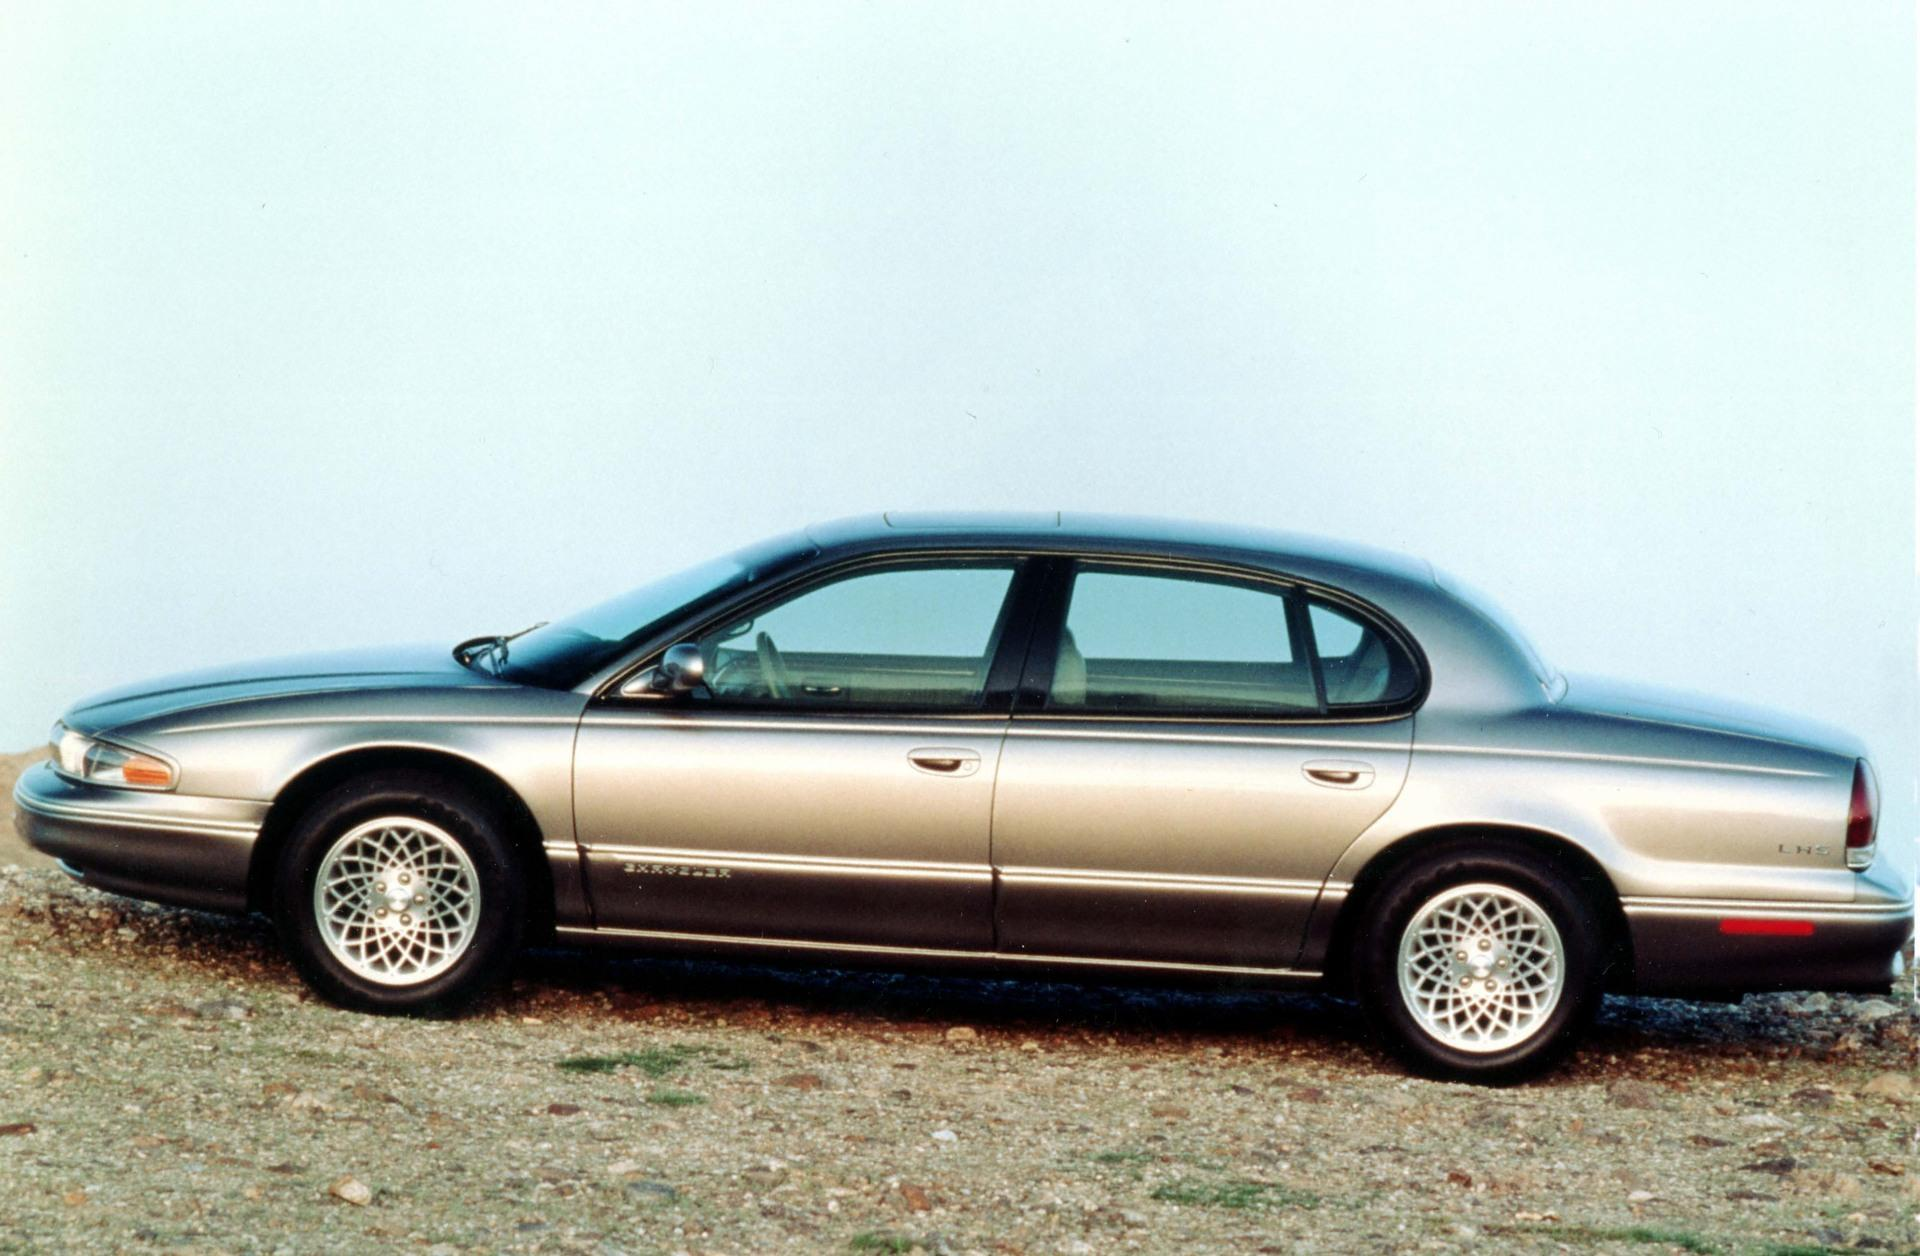 1994 Chrysler Lhs Pictures History Value Research News